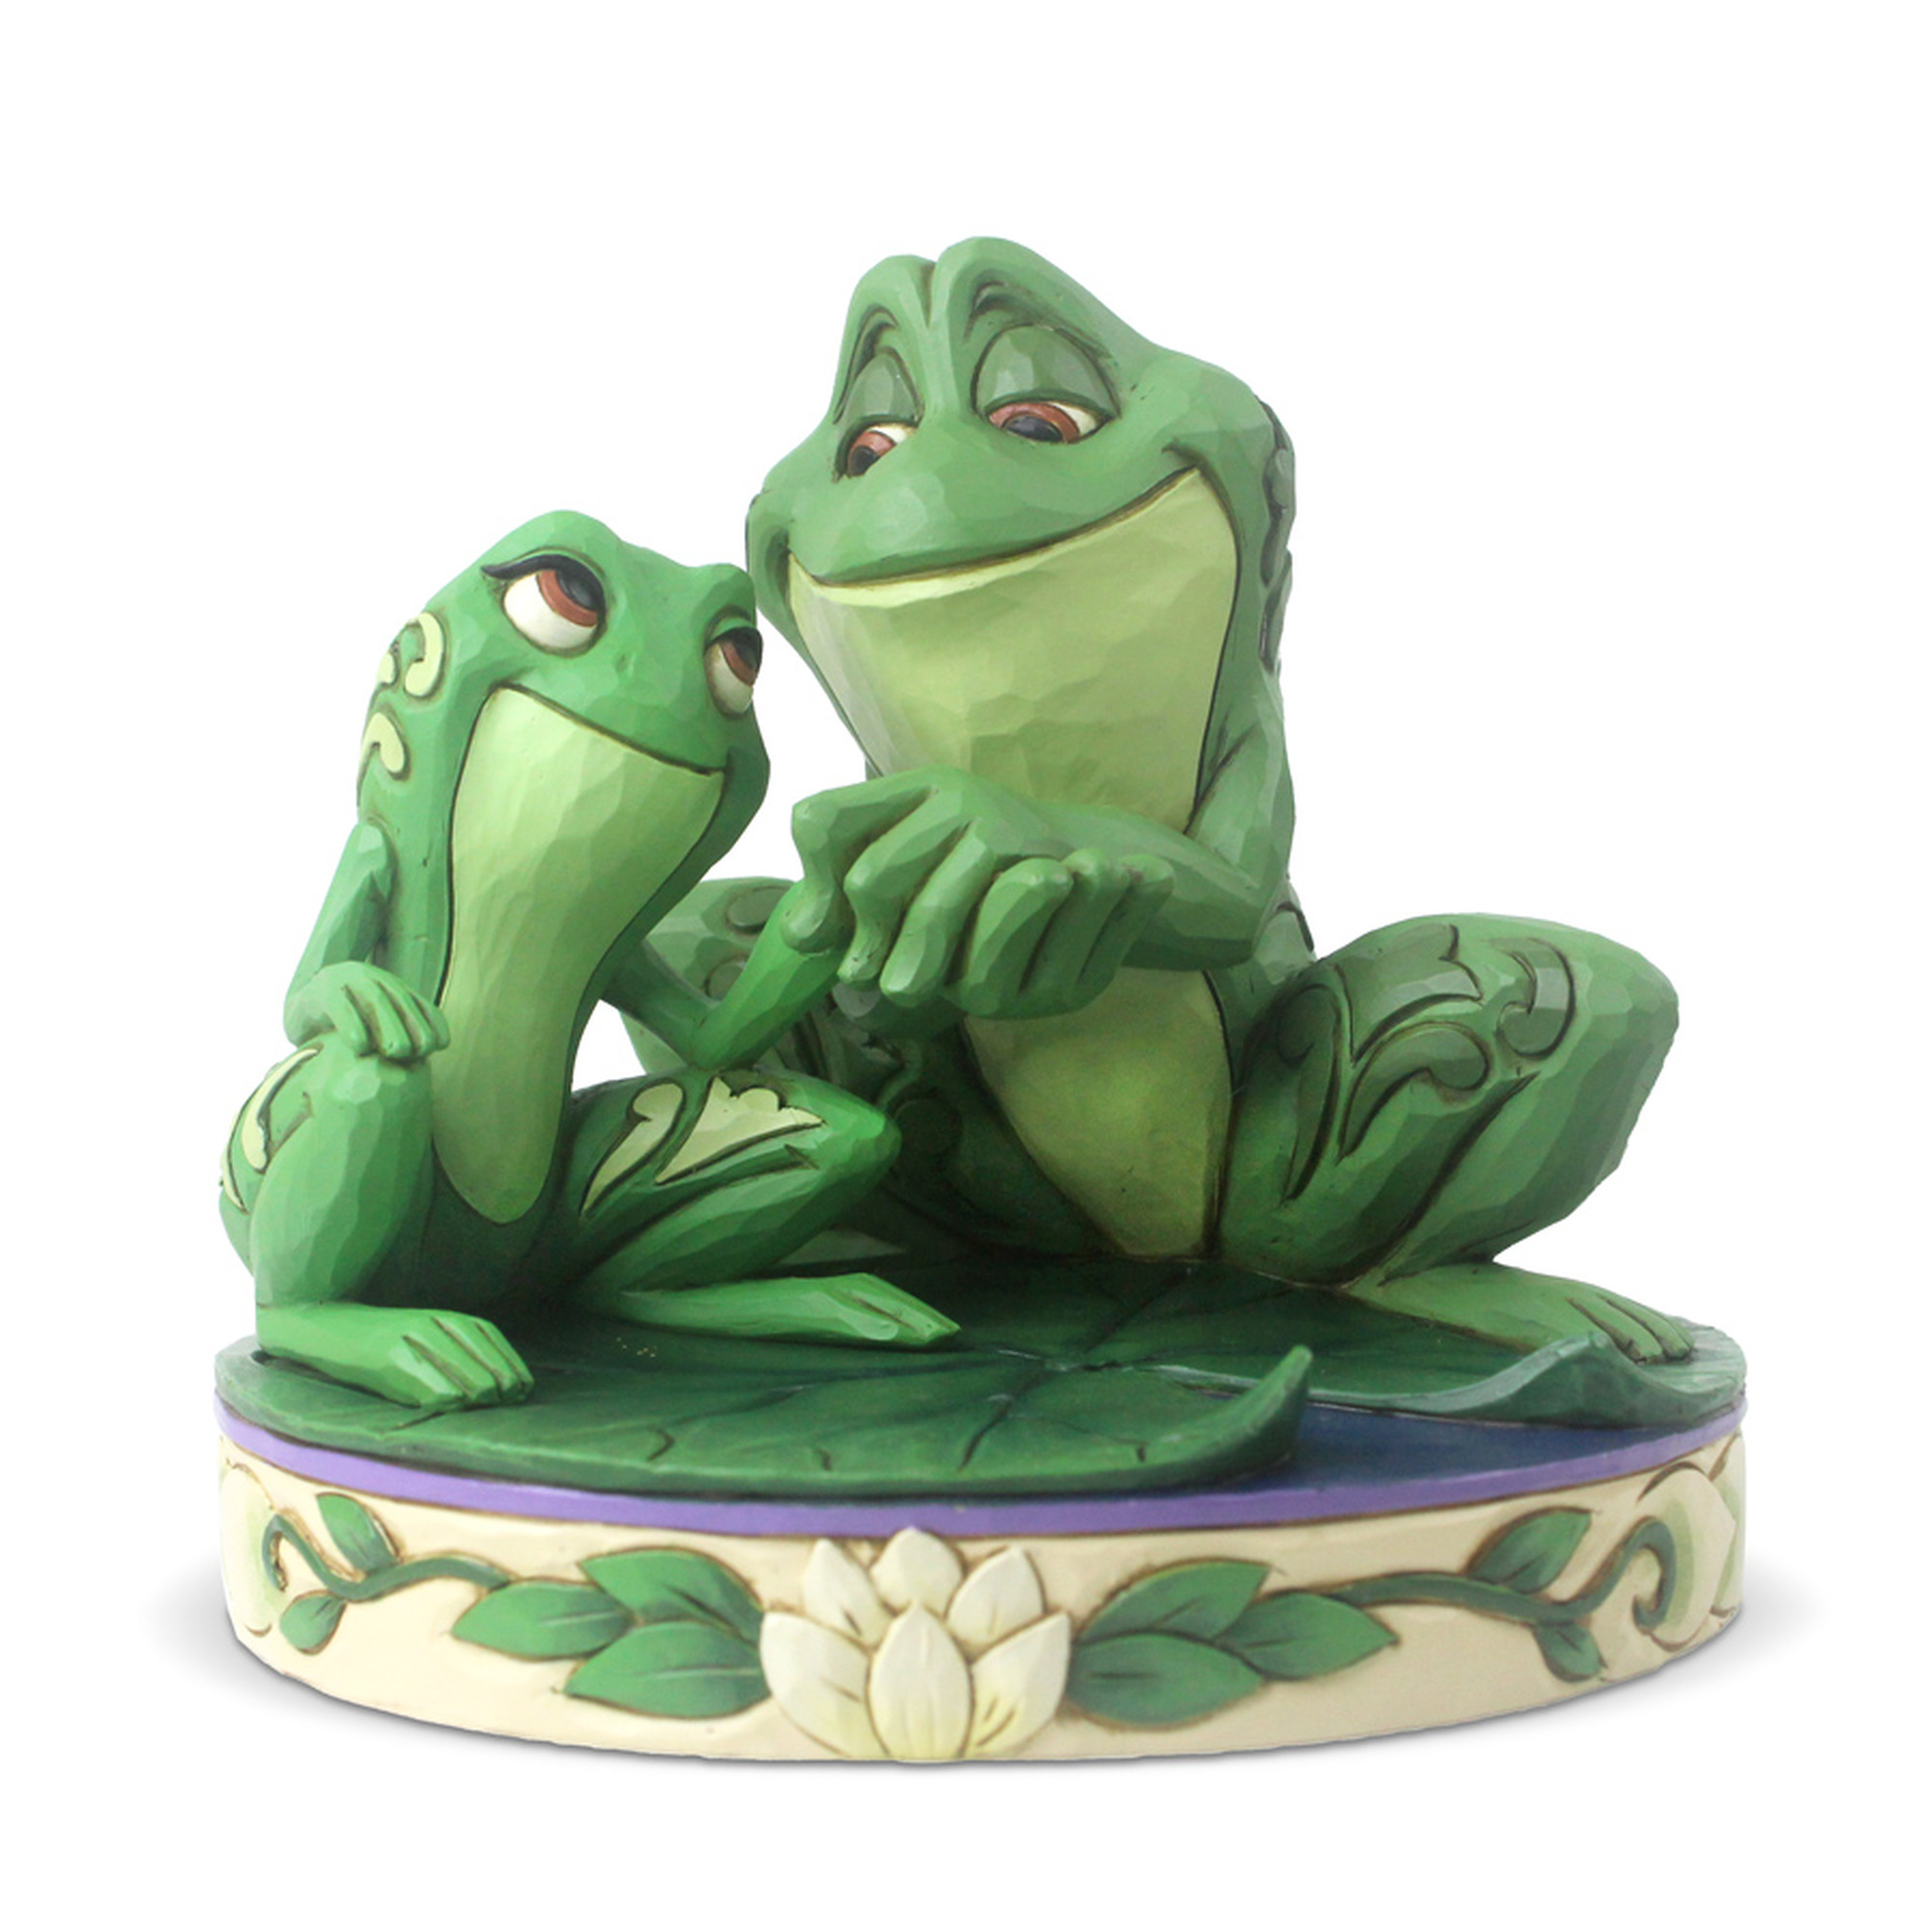 Tiana And Naveen As Frogs Figurine By Jim Shore 6005960 At Otto S Granary